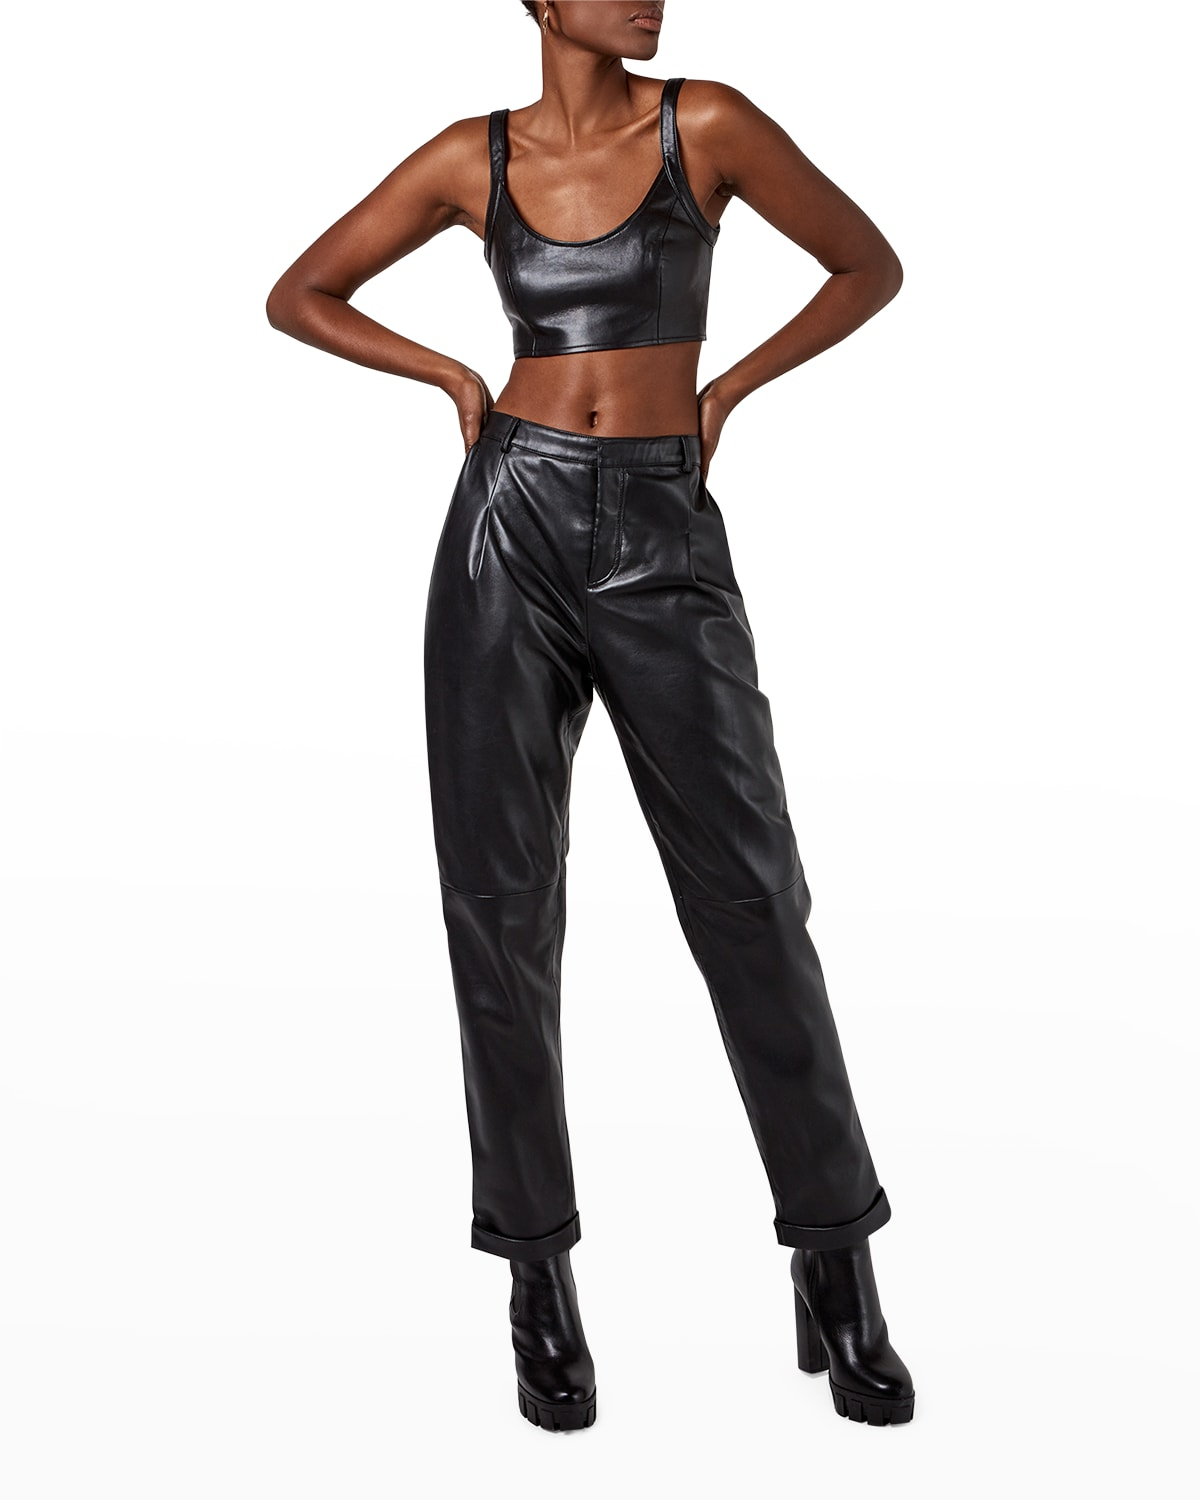 The Denise Recycled Leather Ankle Trousers